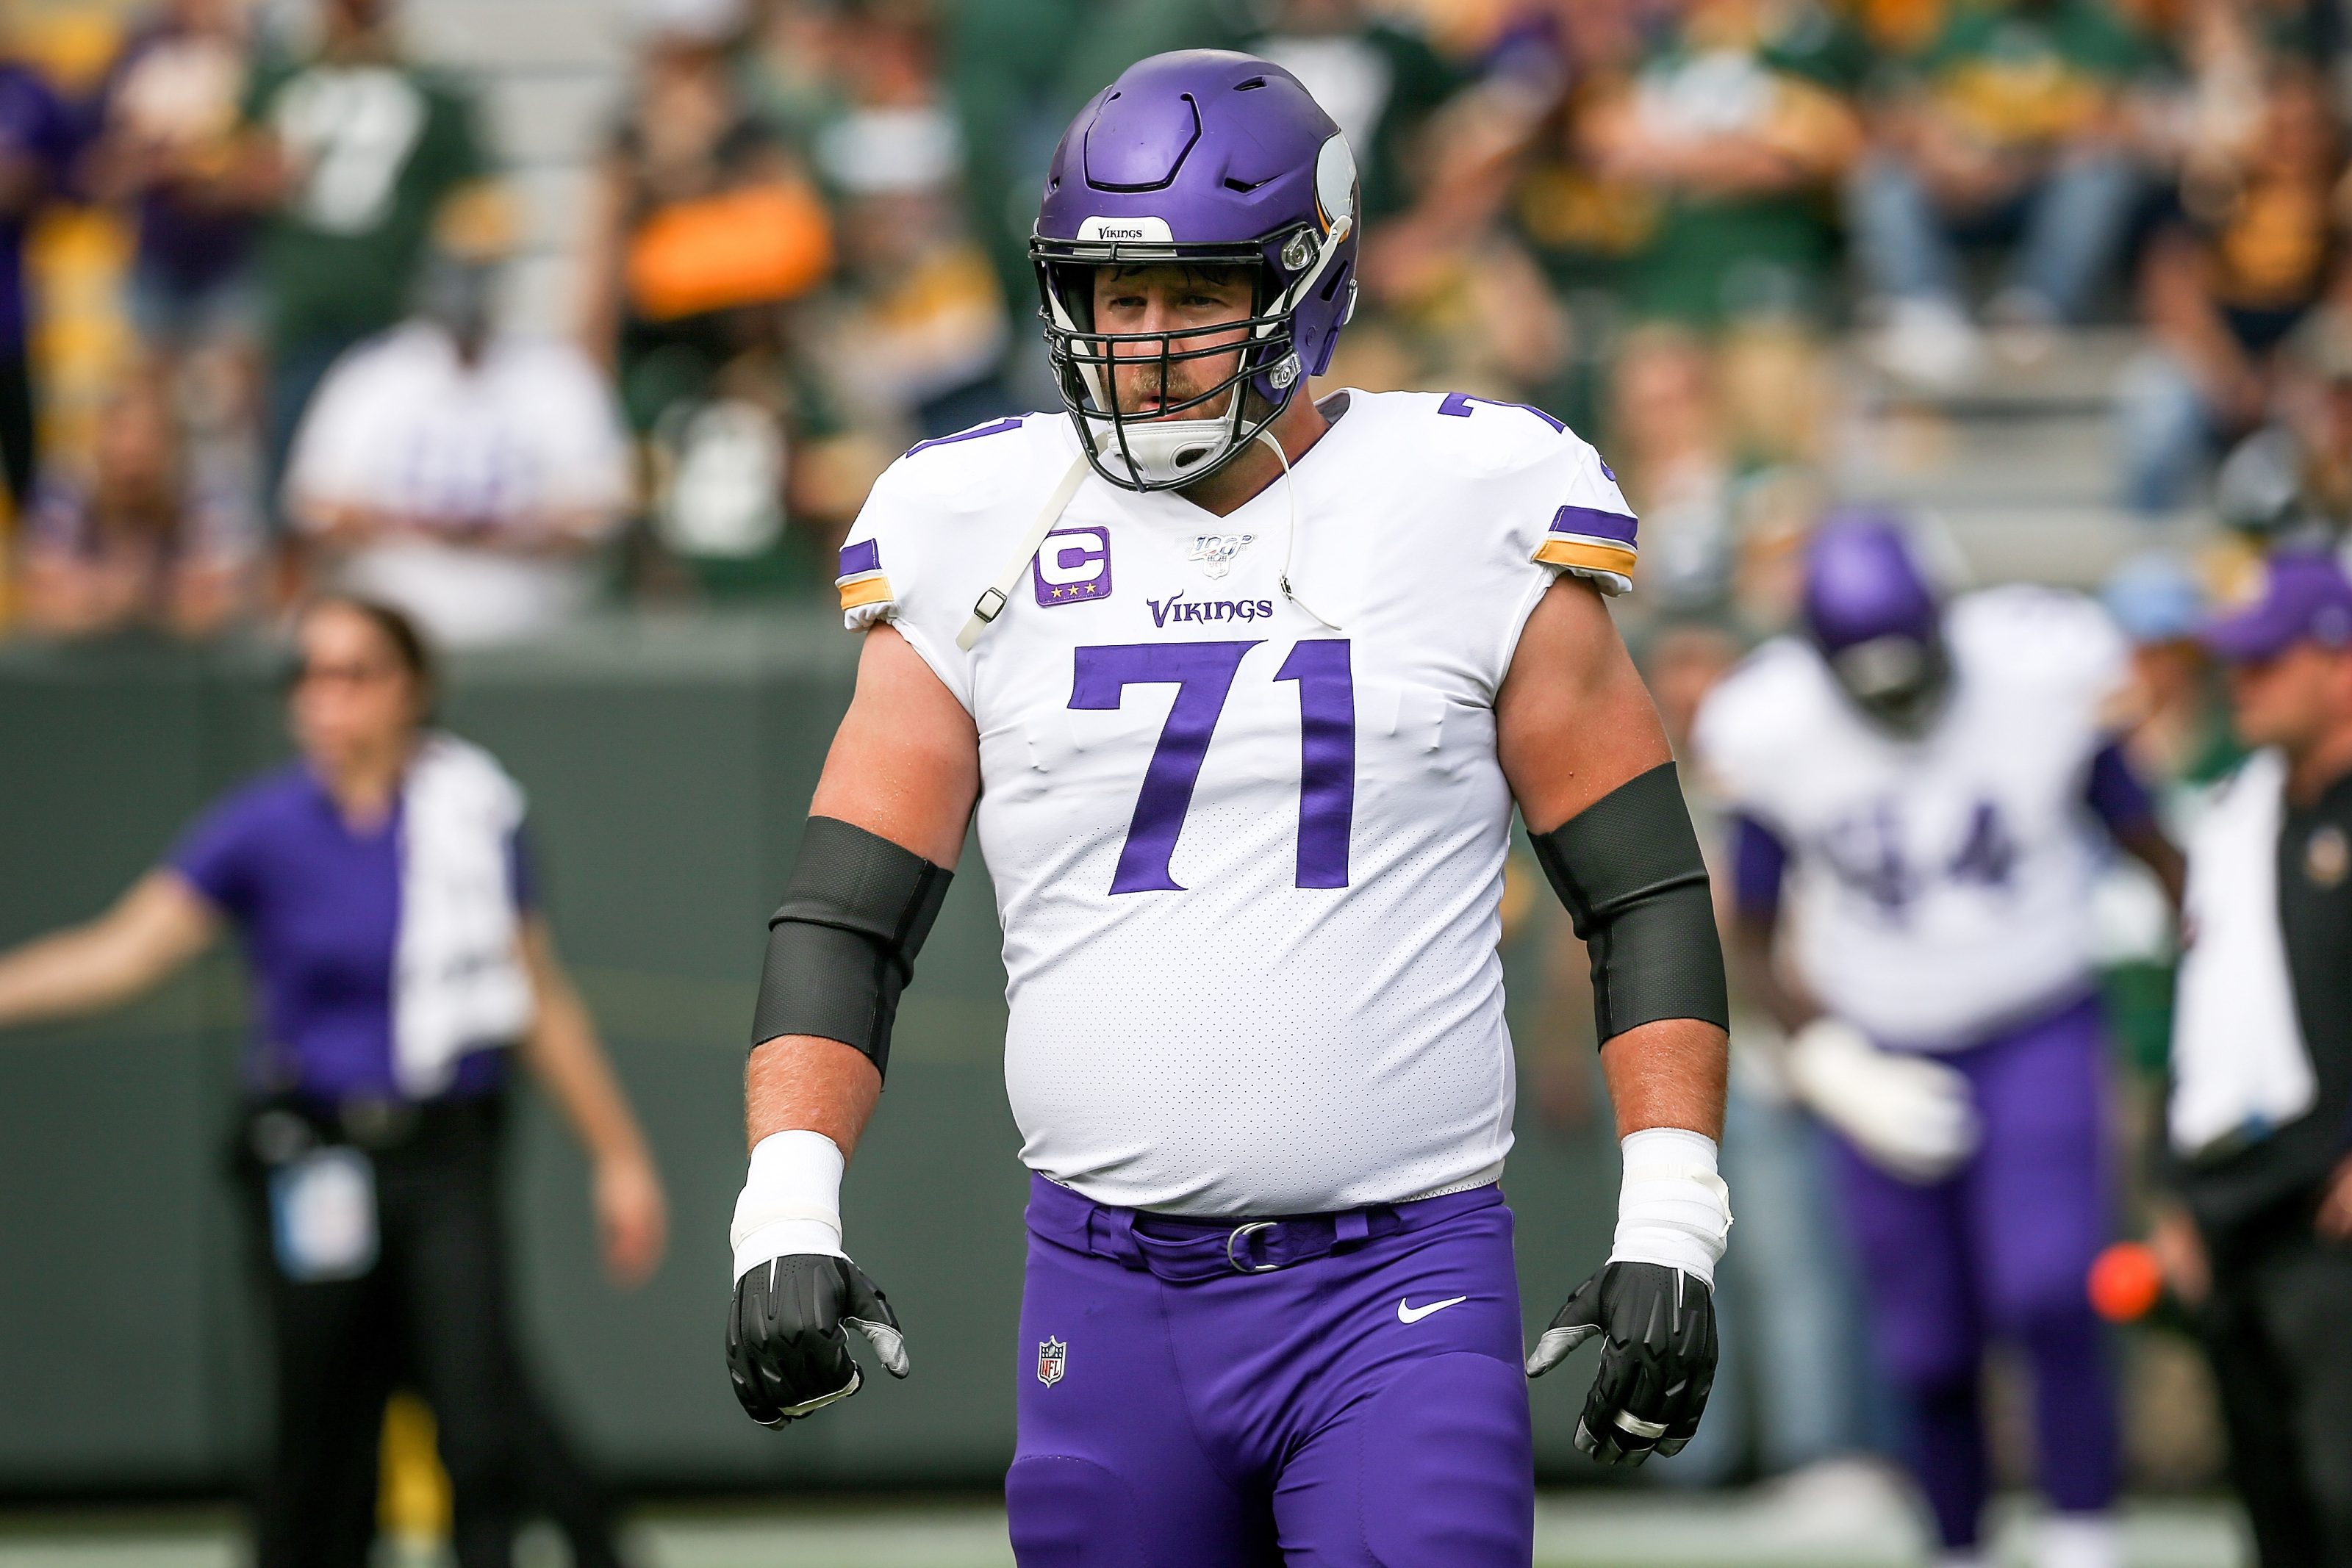 Riley Reiff and the Vikings